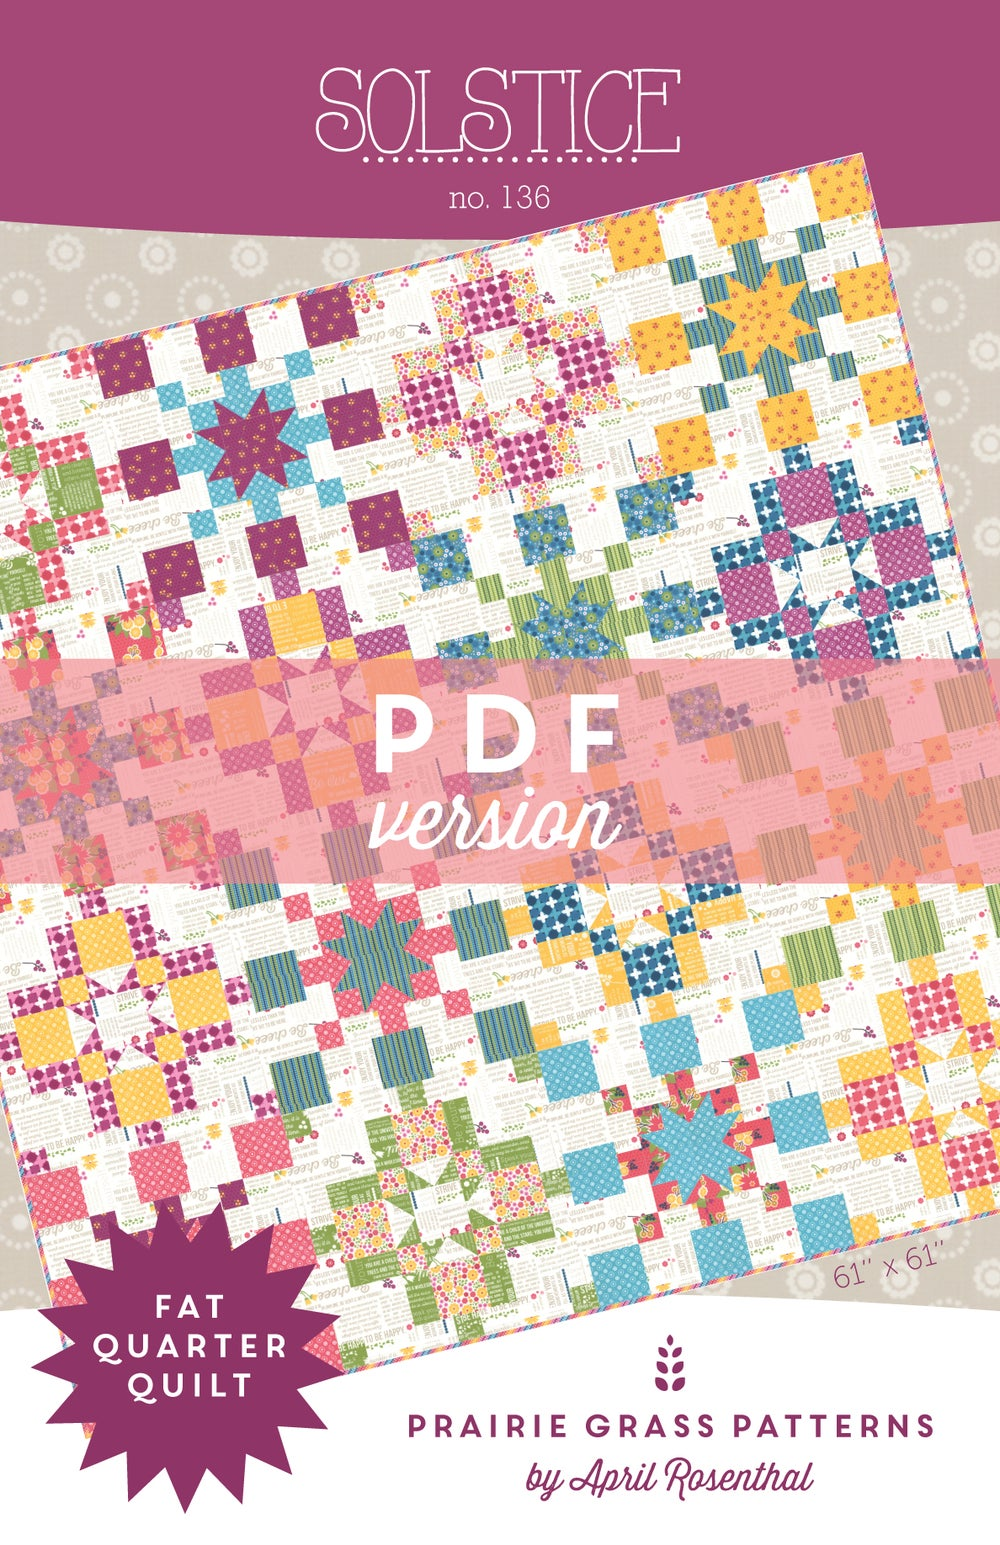 Prairie Grass Patterns Solstice Pdf Quilting Pattern 136